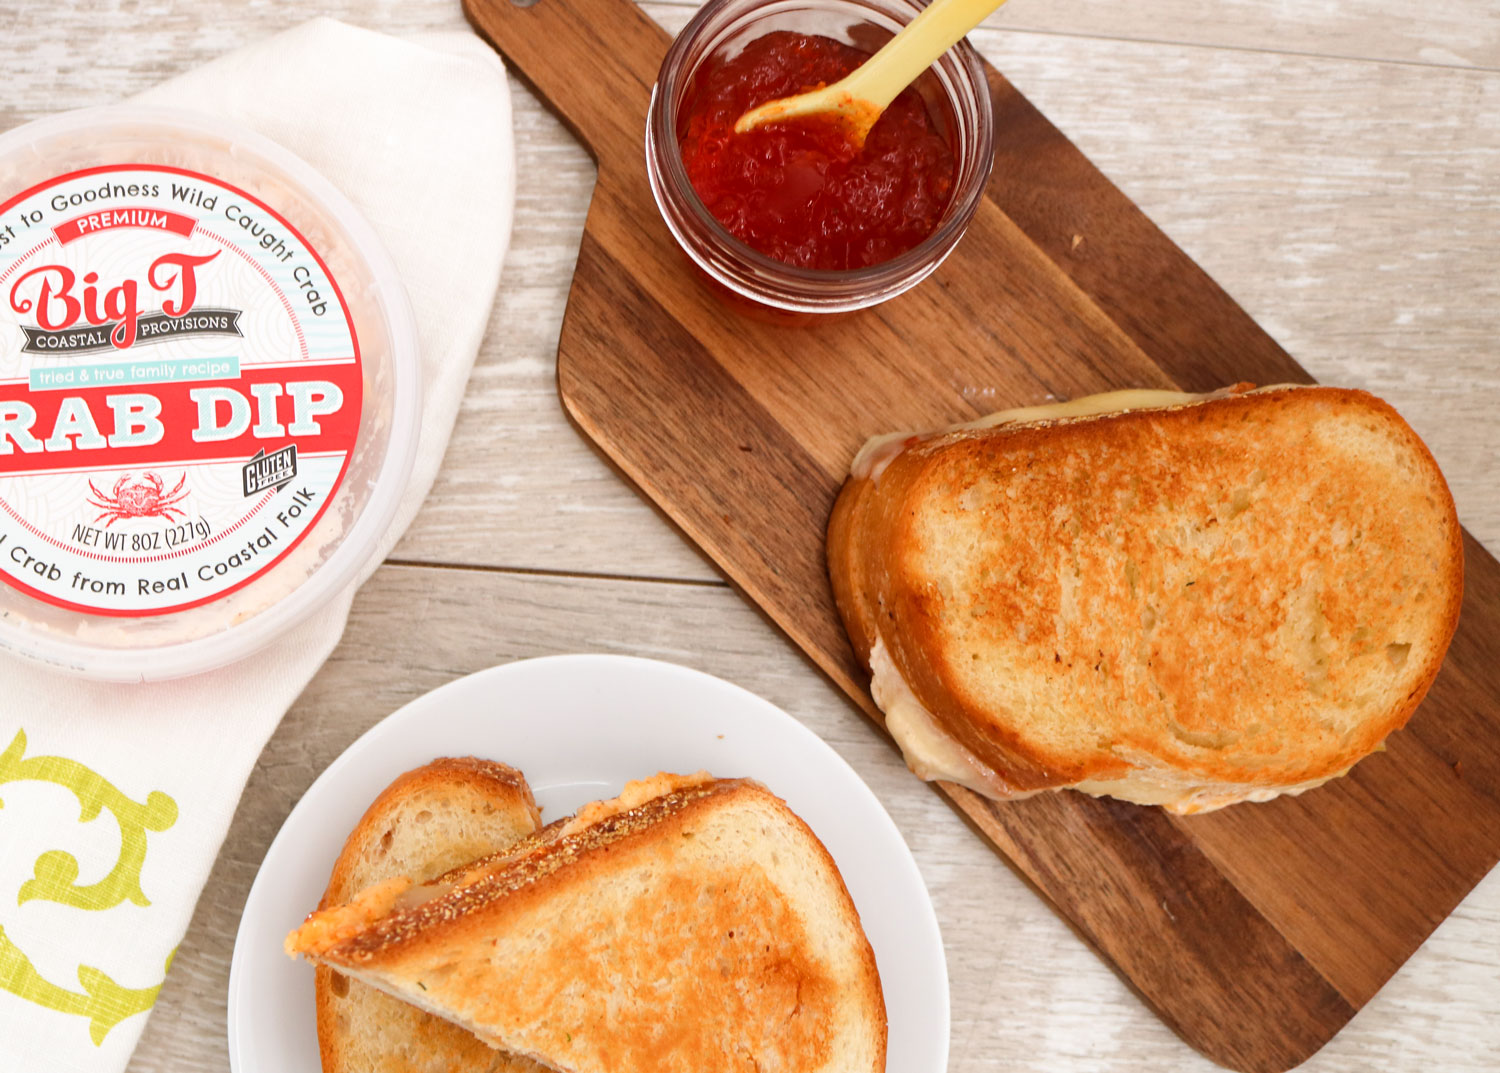 Crab-Grilled-Cheese-Pepper-Jelly-ingredients.jpg